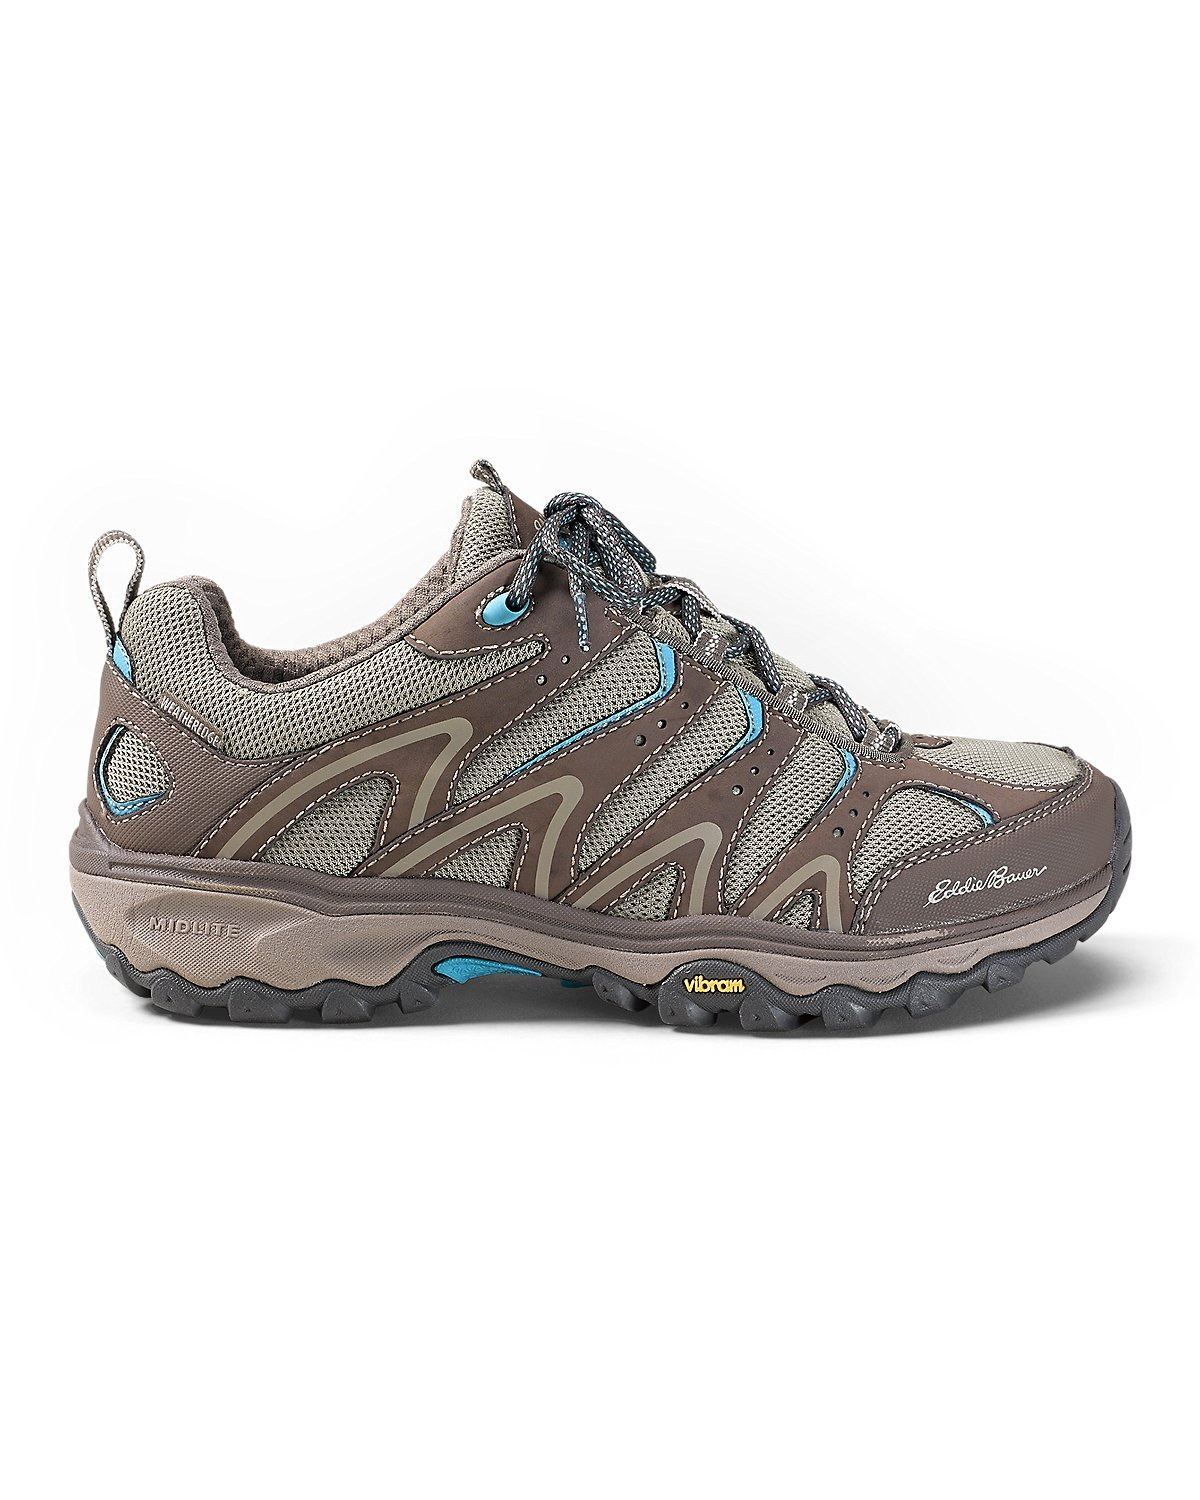 Eddie Bauer Women's Lukla Pro Waterproof Lightweight Hiker B00MHVO6DC 10 B(M) US|Mushroom (Brown)